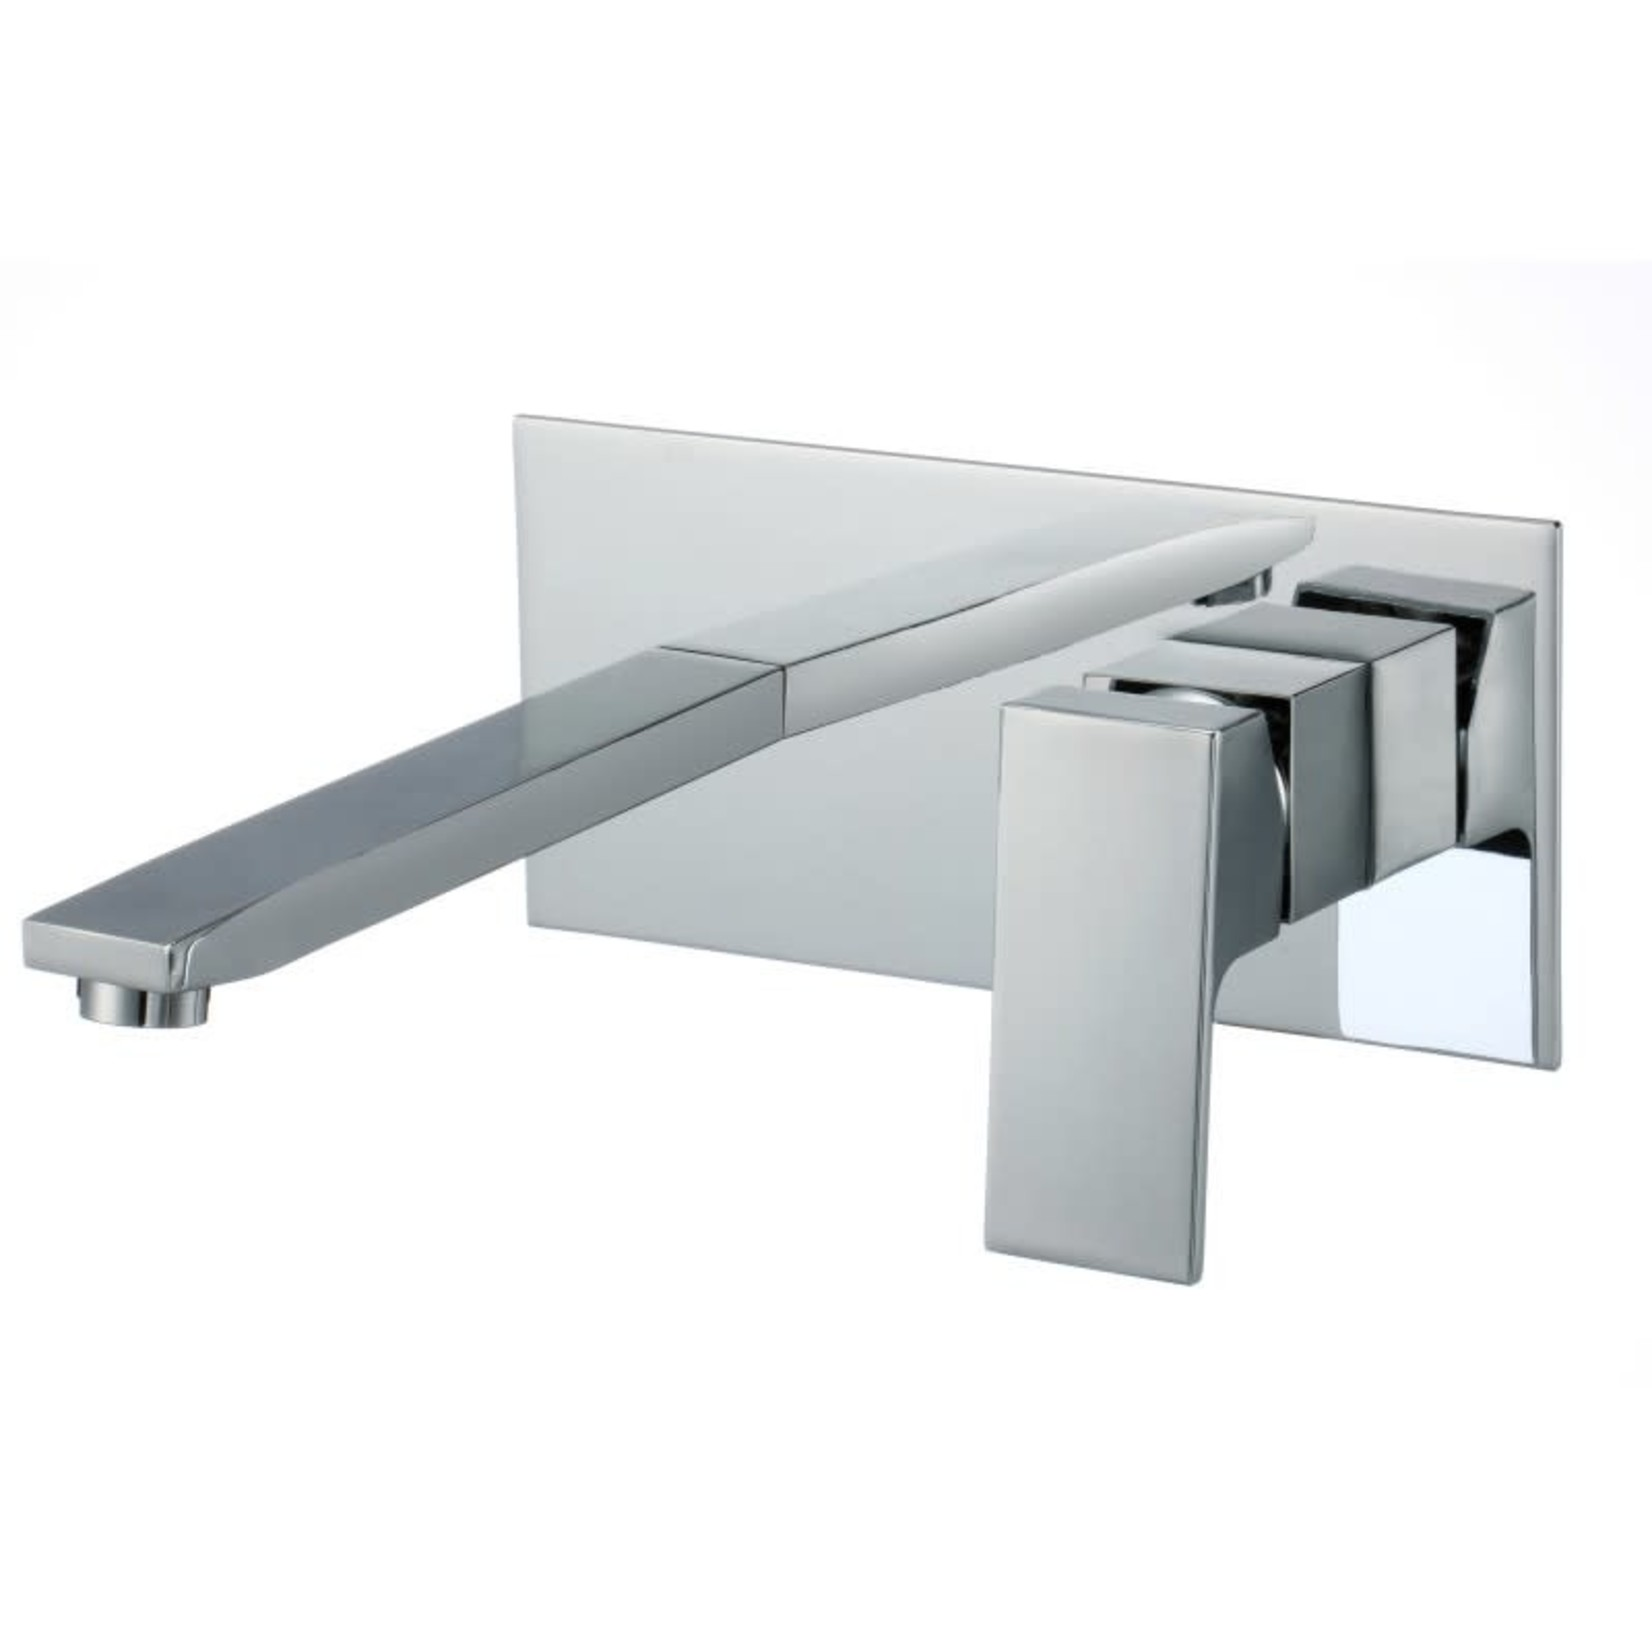 Chrome wall-mounted washbasin faucet Kimmi collection 606chr